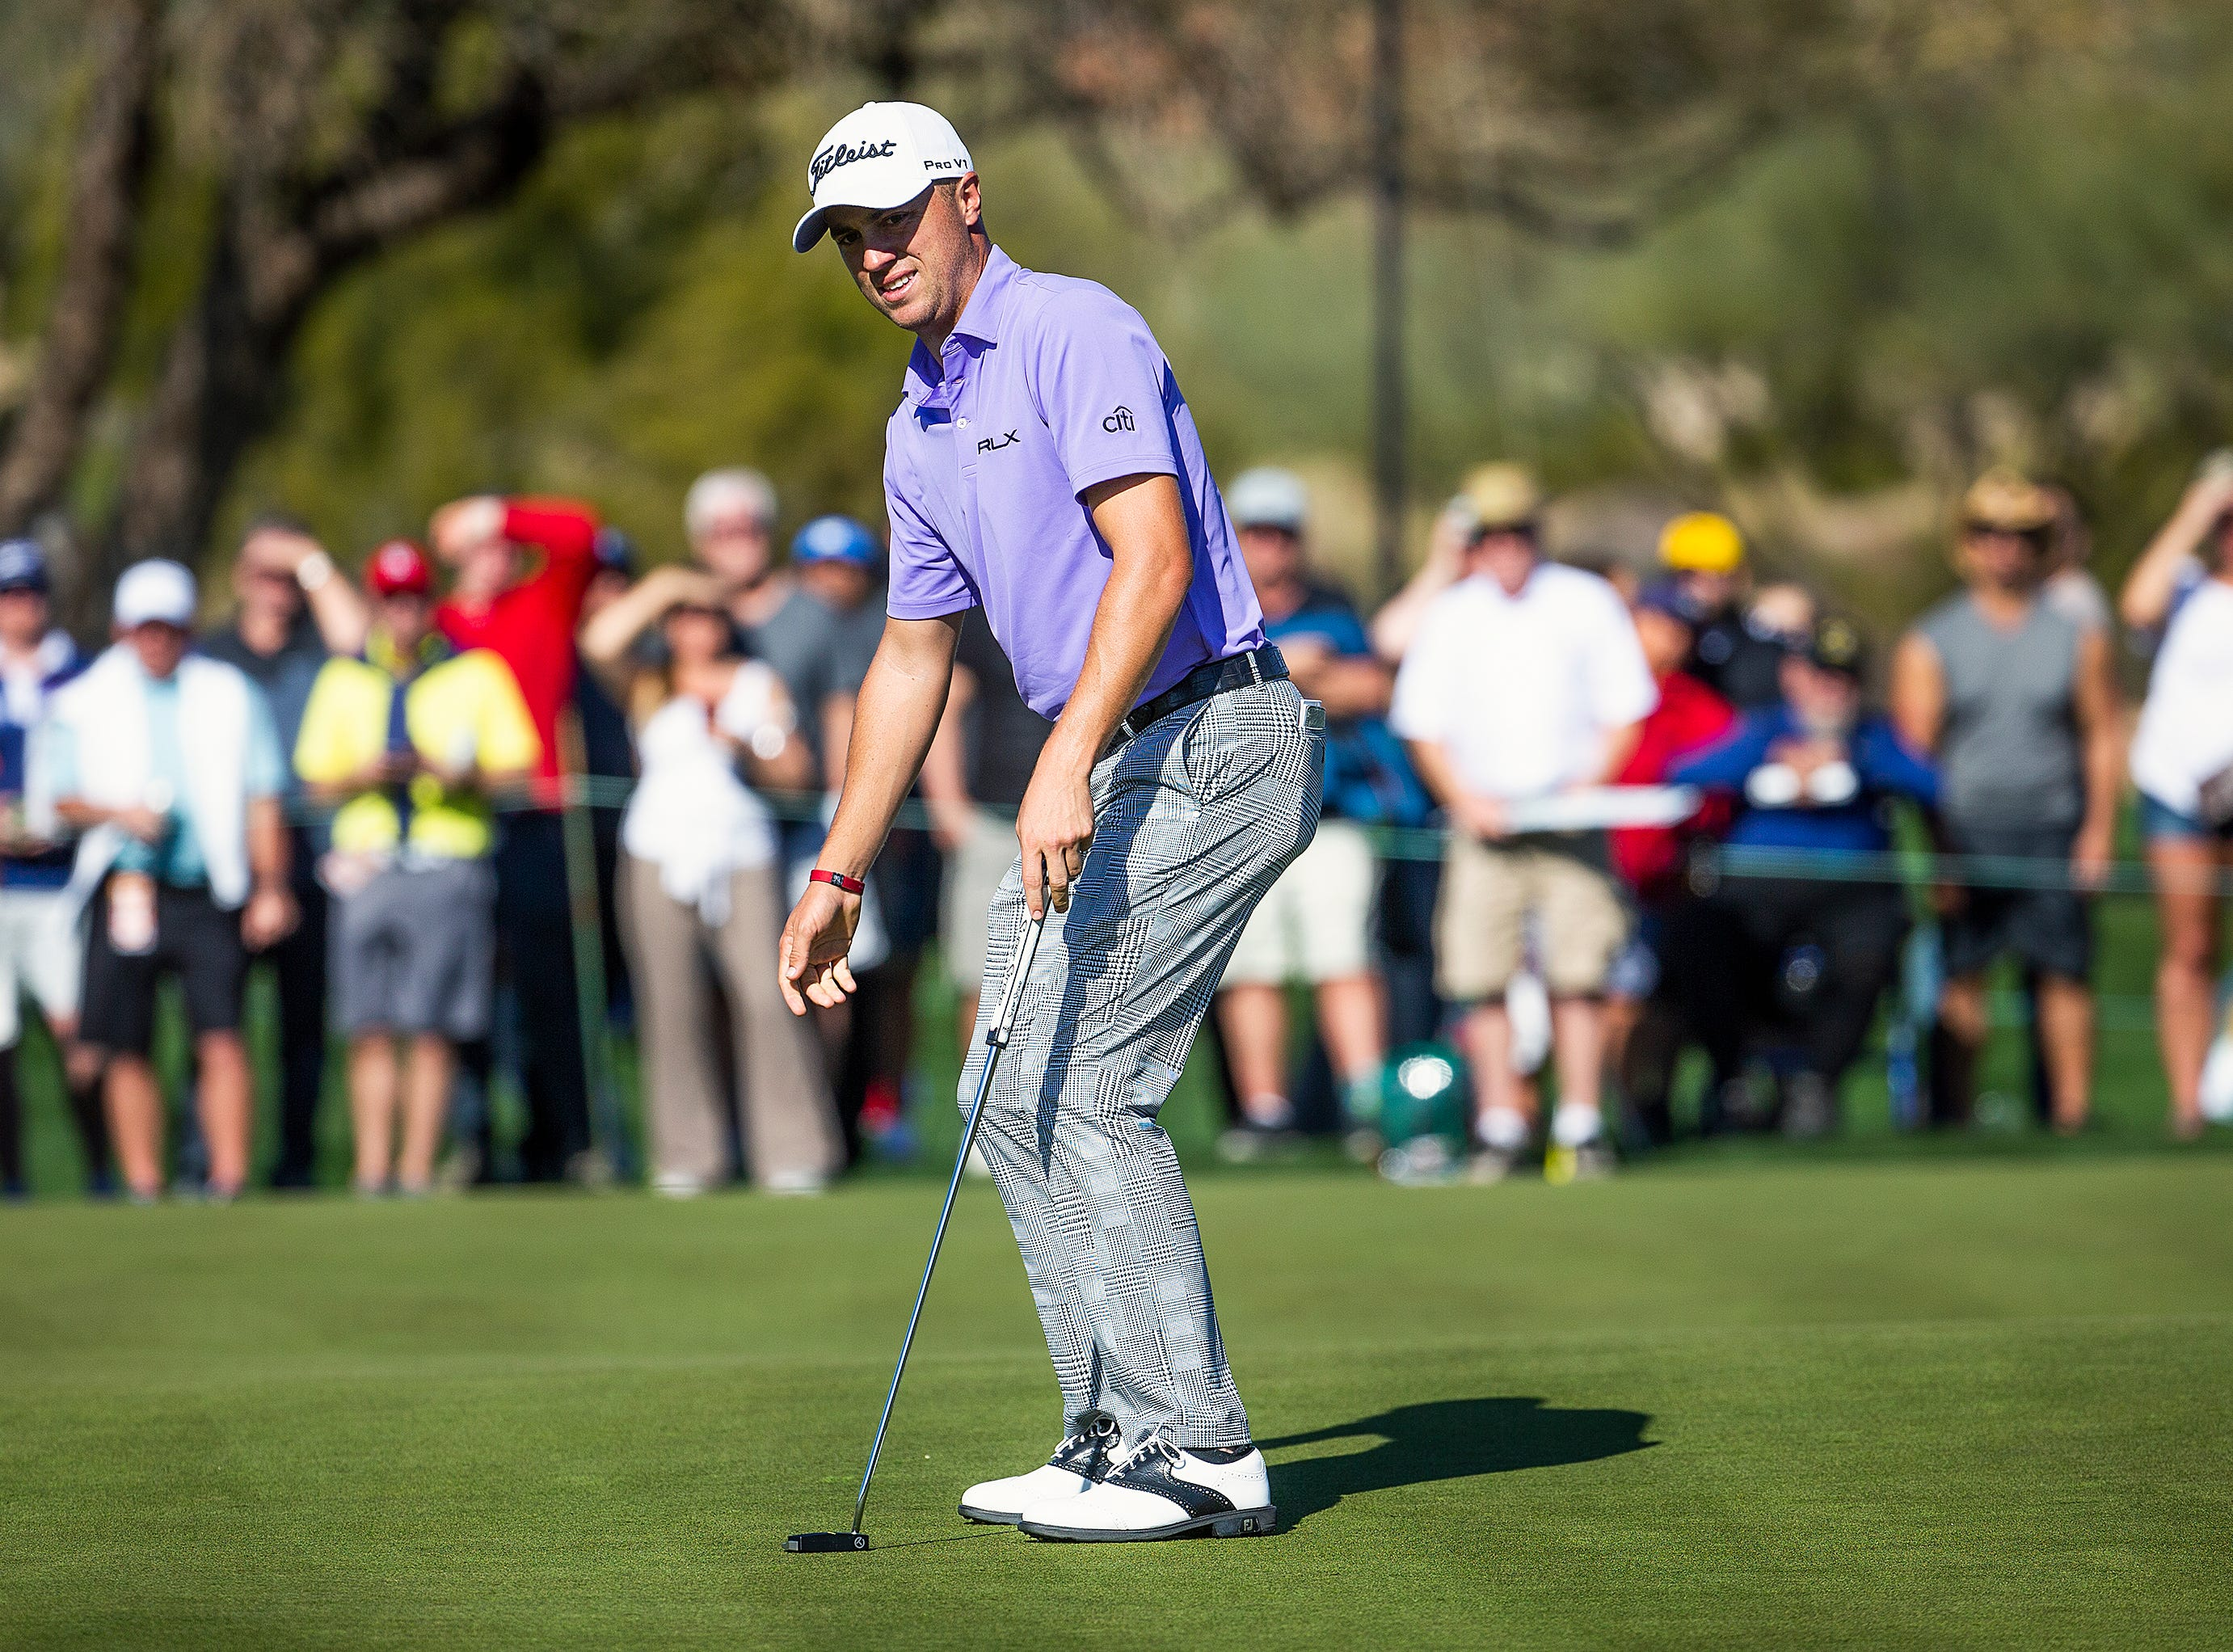 Justin Thomas reacts to missing his putt on the 9th hole during the second round of the Waste Management Phoenix Open at the TPC Scottsdale, Friday, February 1, 2019.